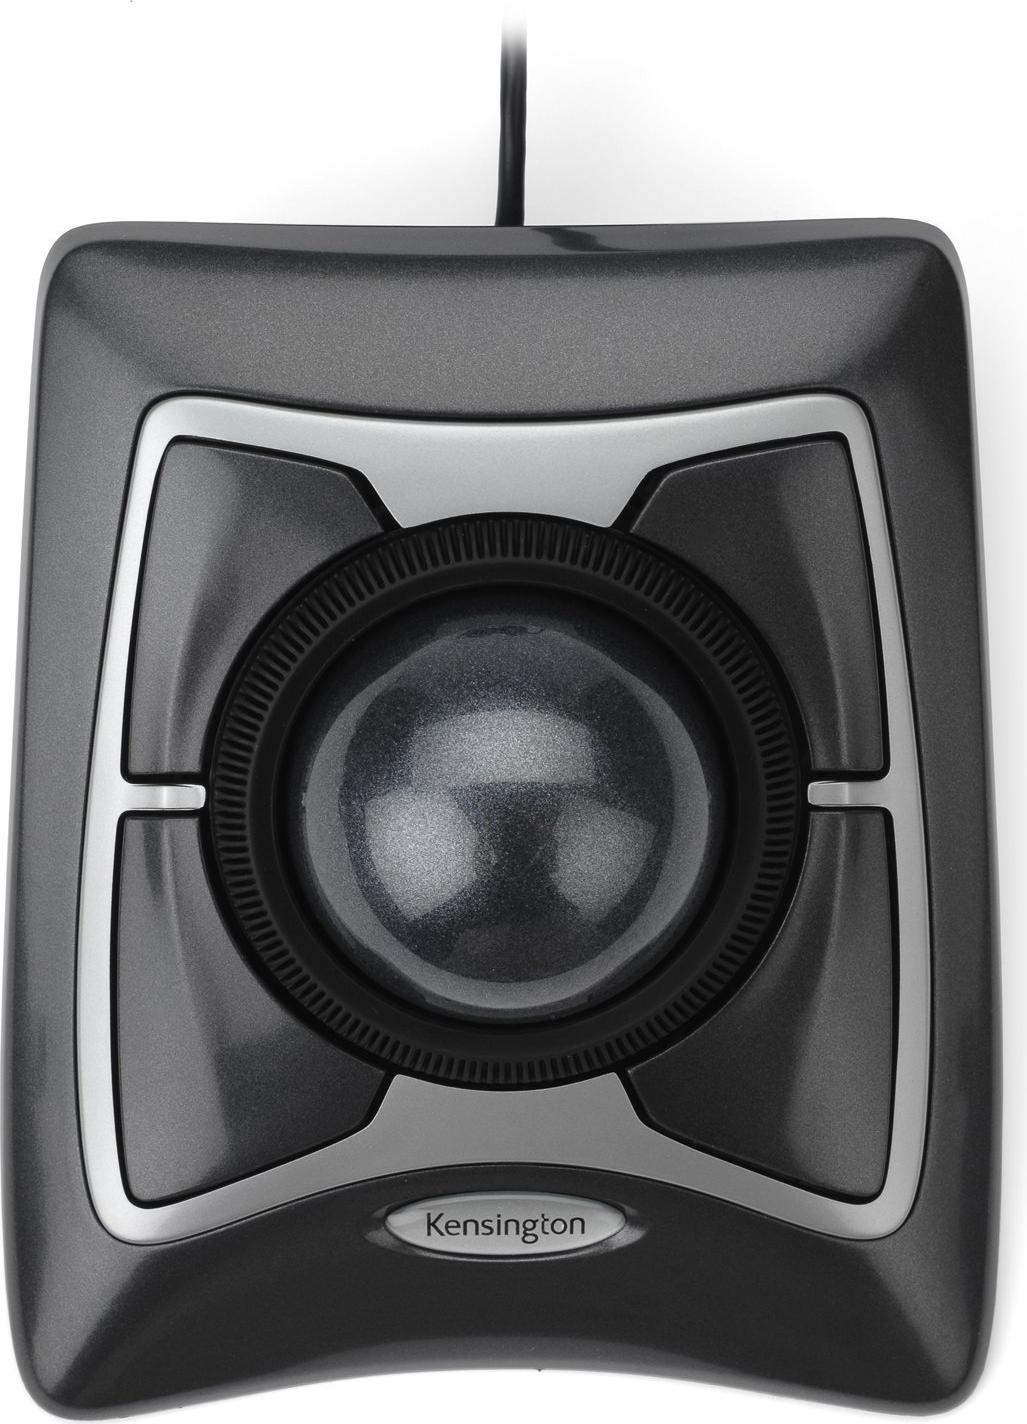 Kensington Expert Mouse Optical USB Trackball Actual Size Image